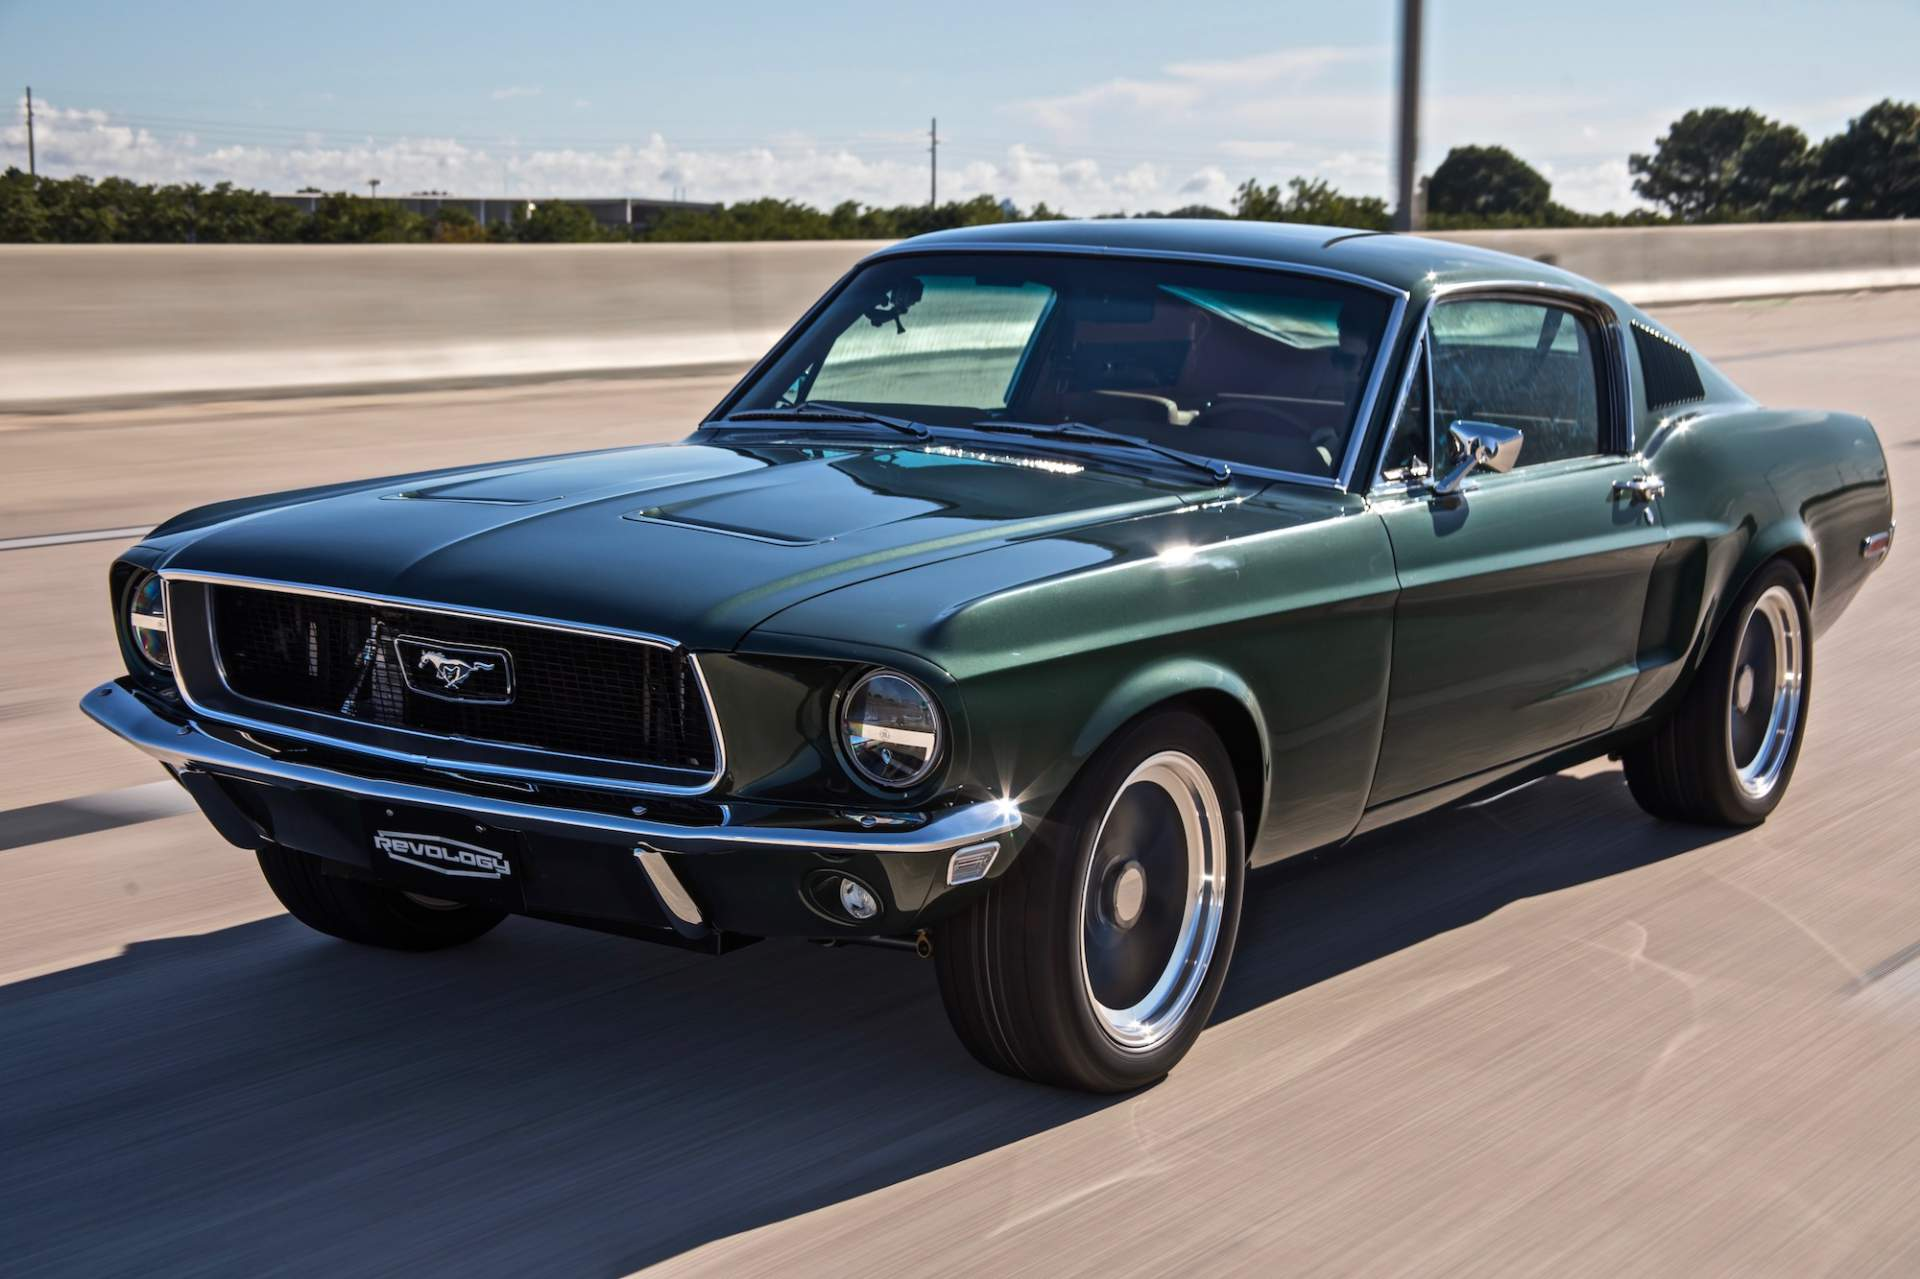 1968_Ford_Mustang_Fastback_by_Revology_0001